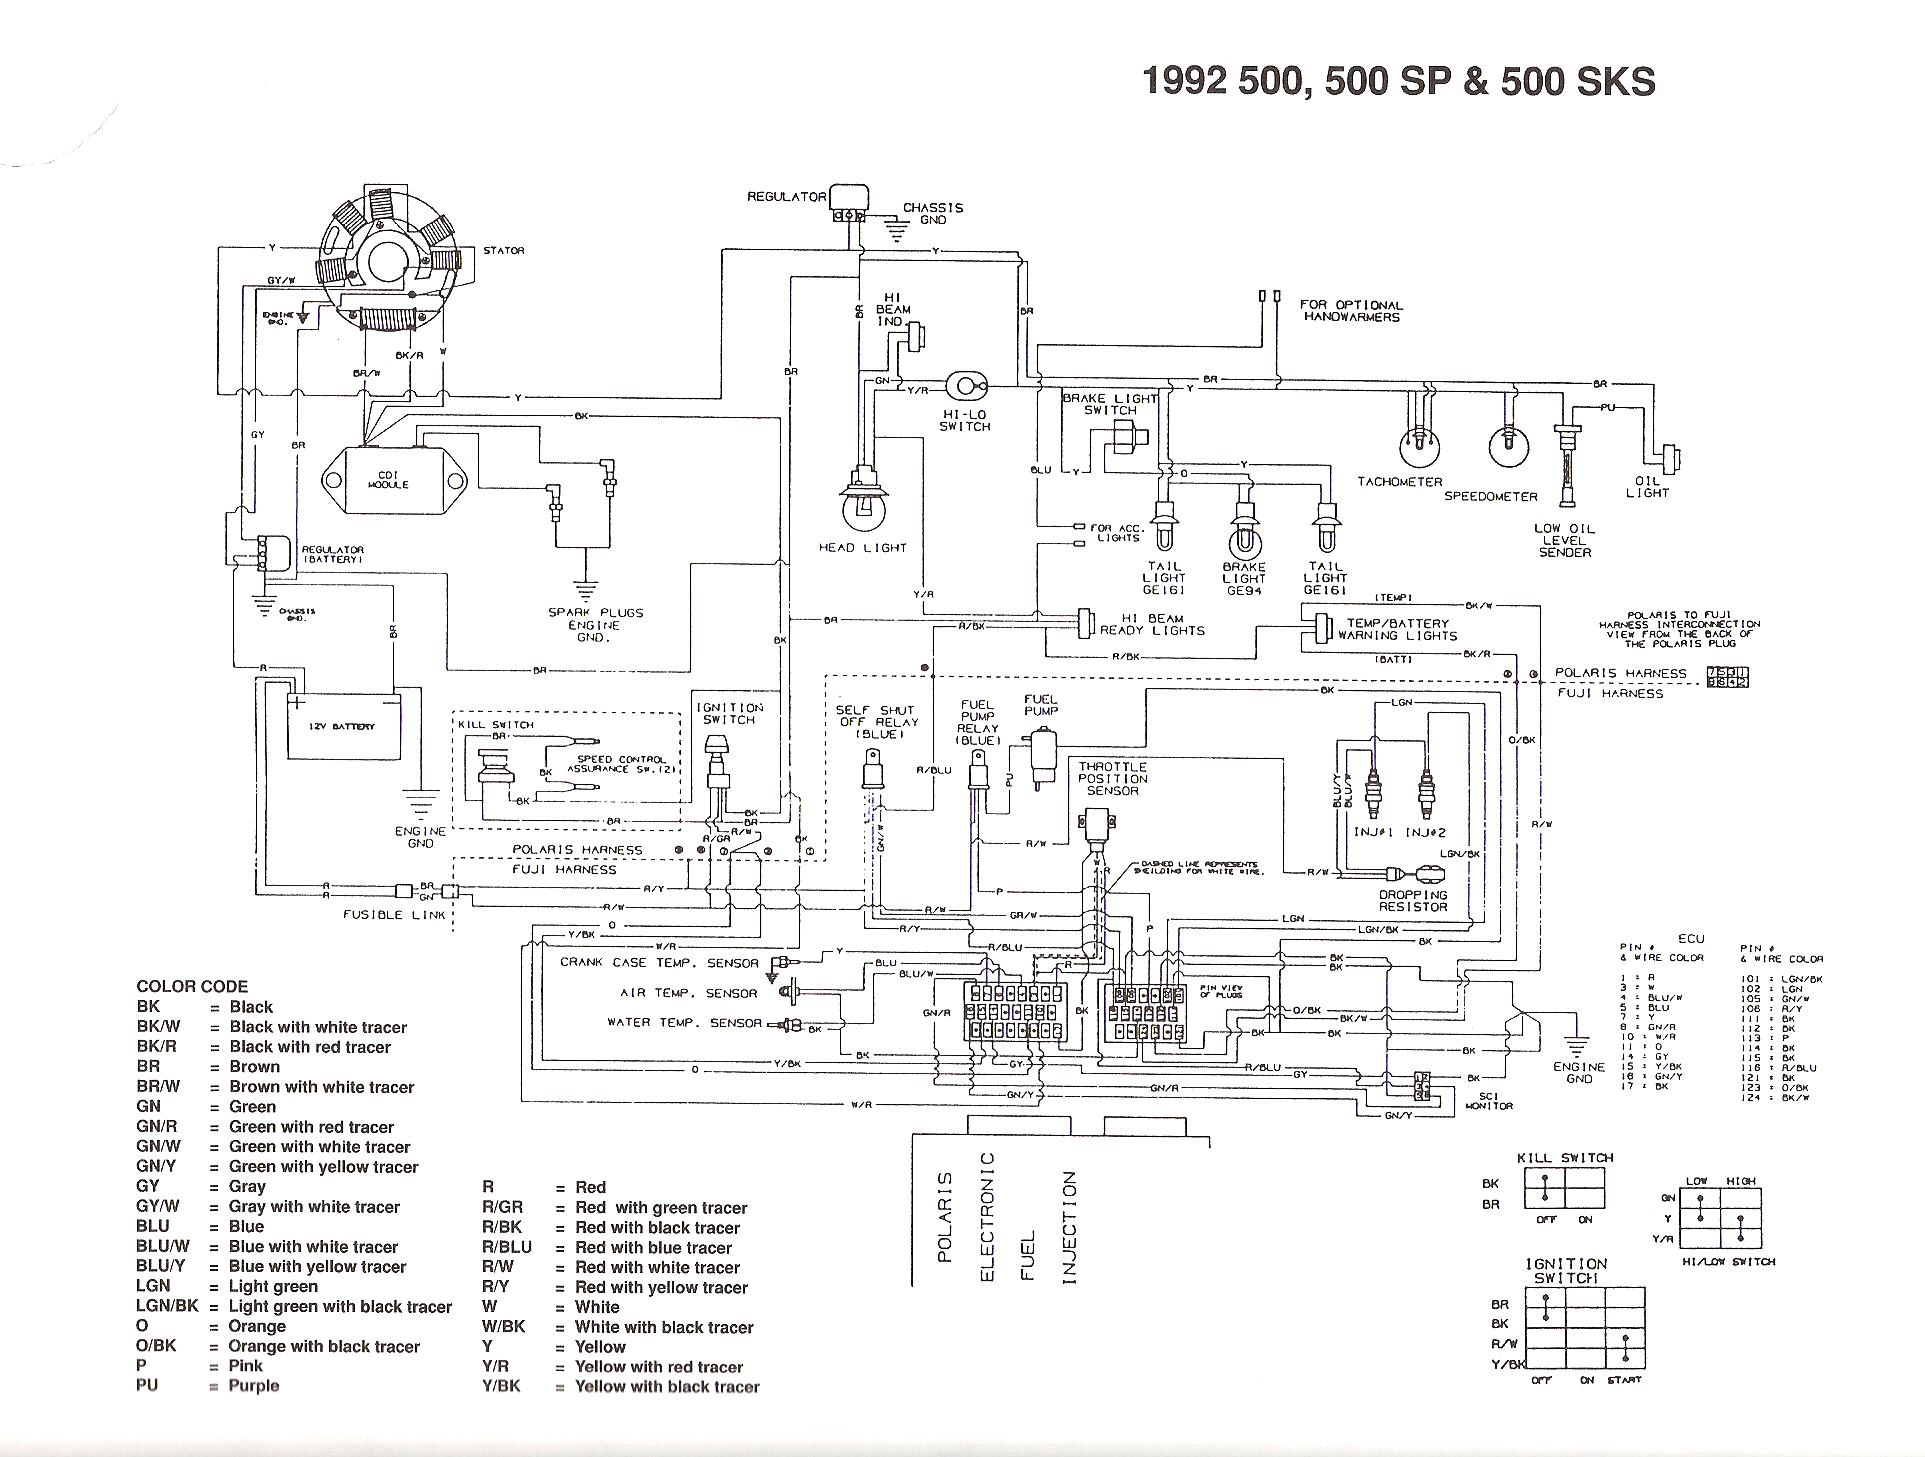 2004 Polaris Sportsman 500 Wiring Diagram from i1.wp.com